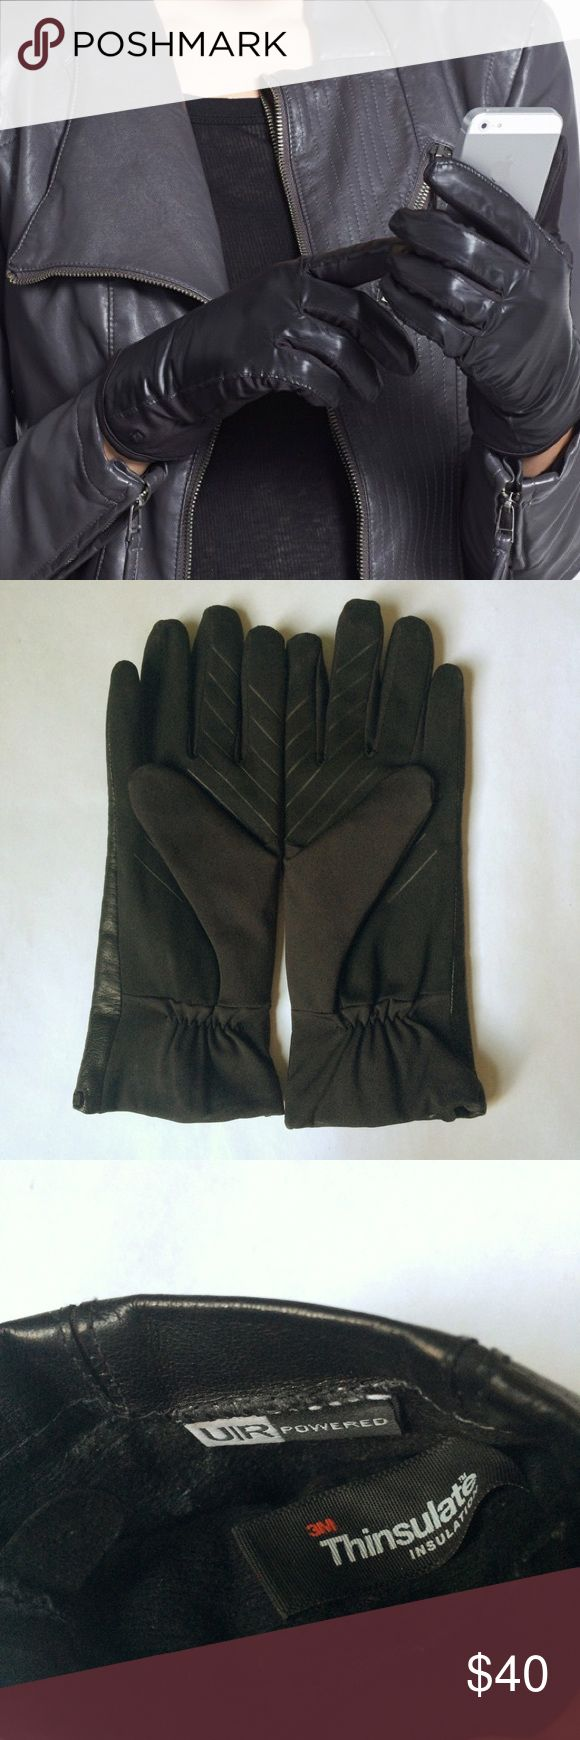 Ladies leather gloves with thinsulate - Urban Research Ur Leather Tech Gloves